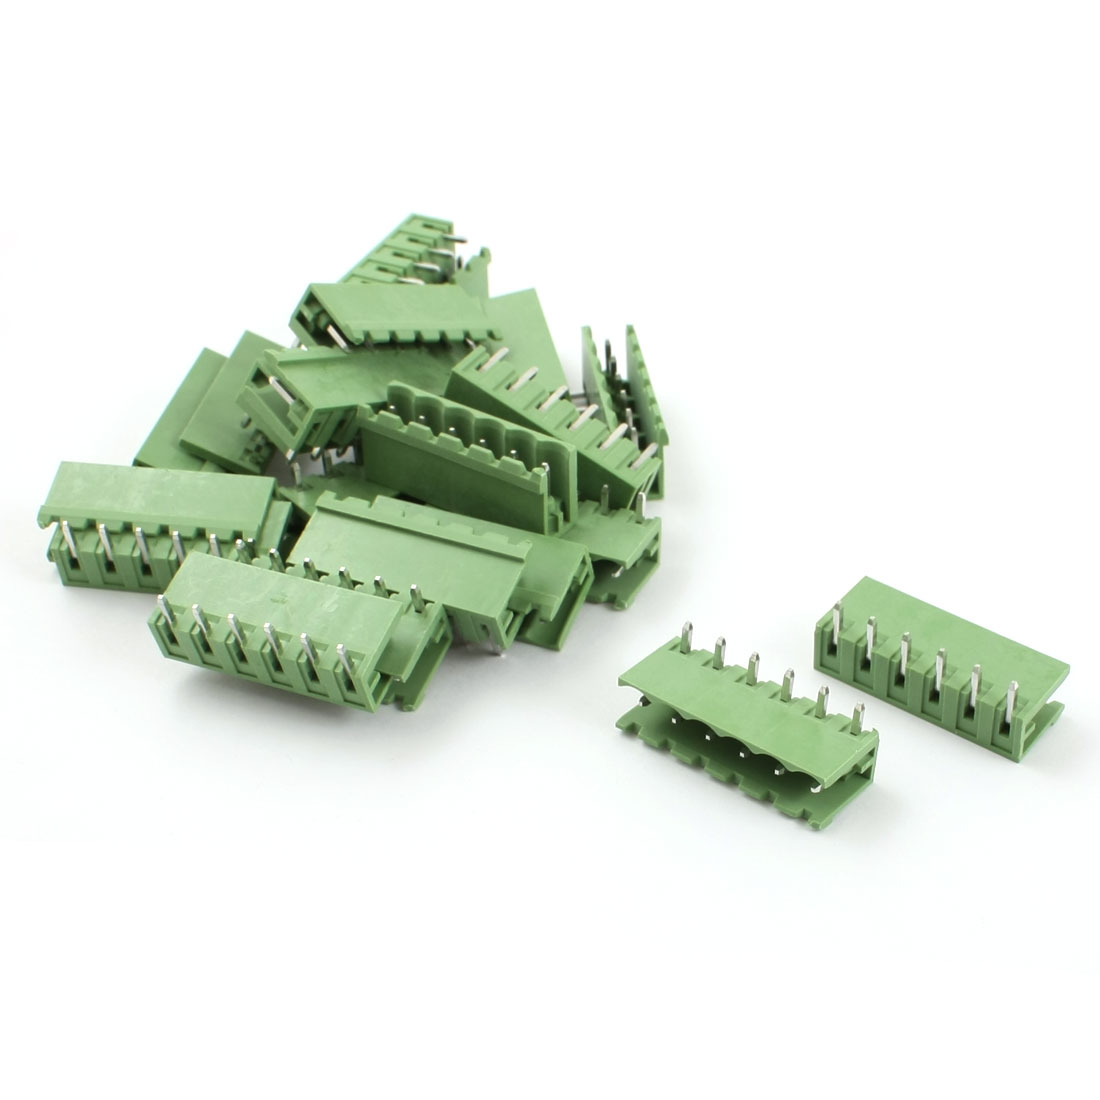 20Pcs Green 5.08mm Pitch Right Angle 6 Pin Pluggable Terminal Block Connector